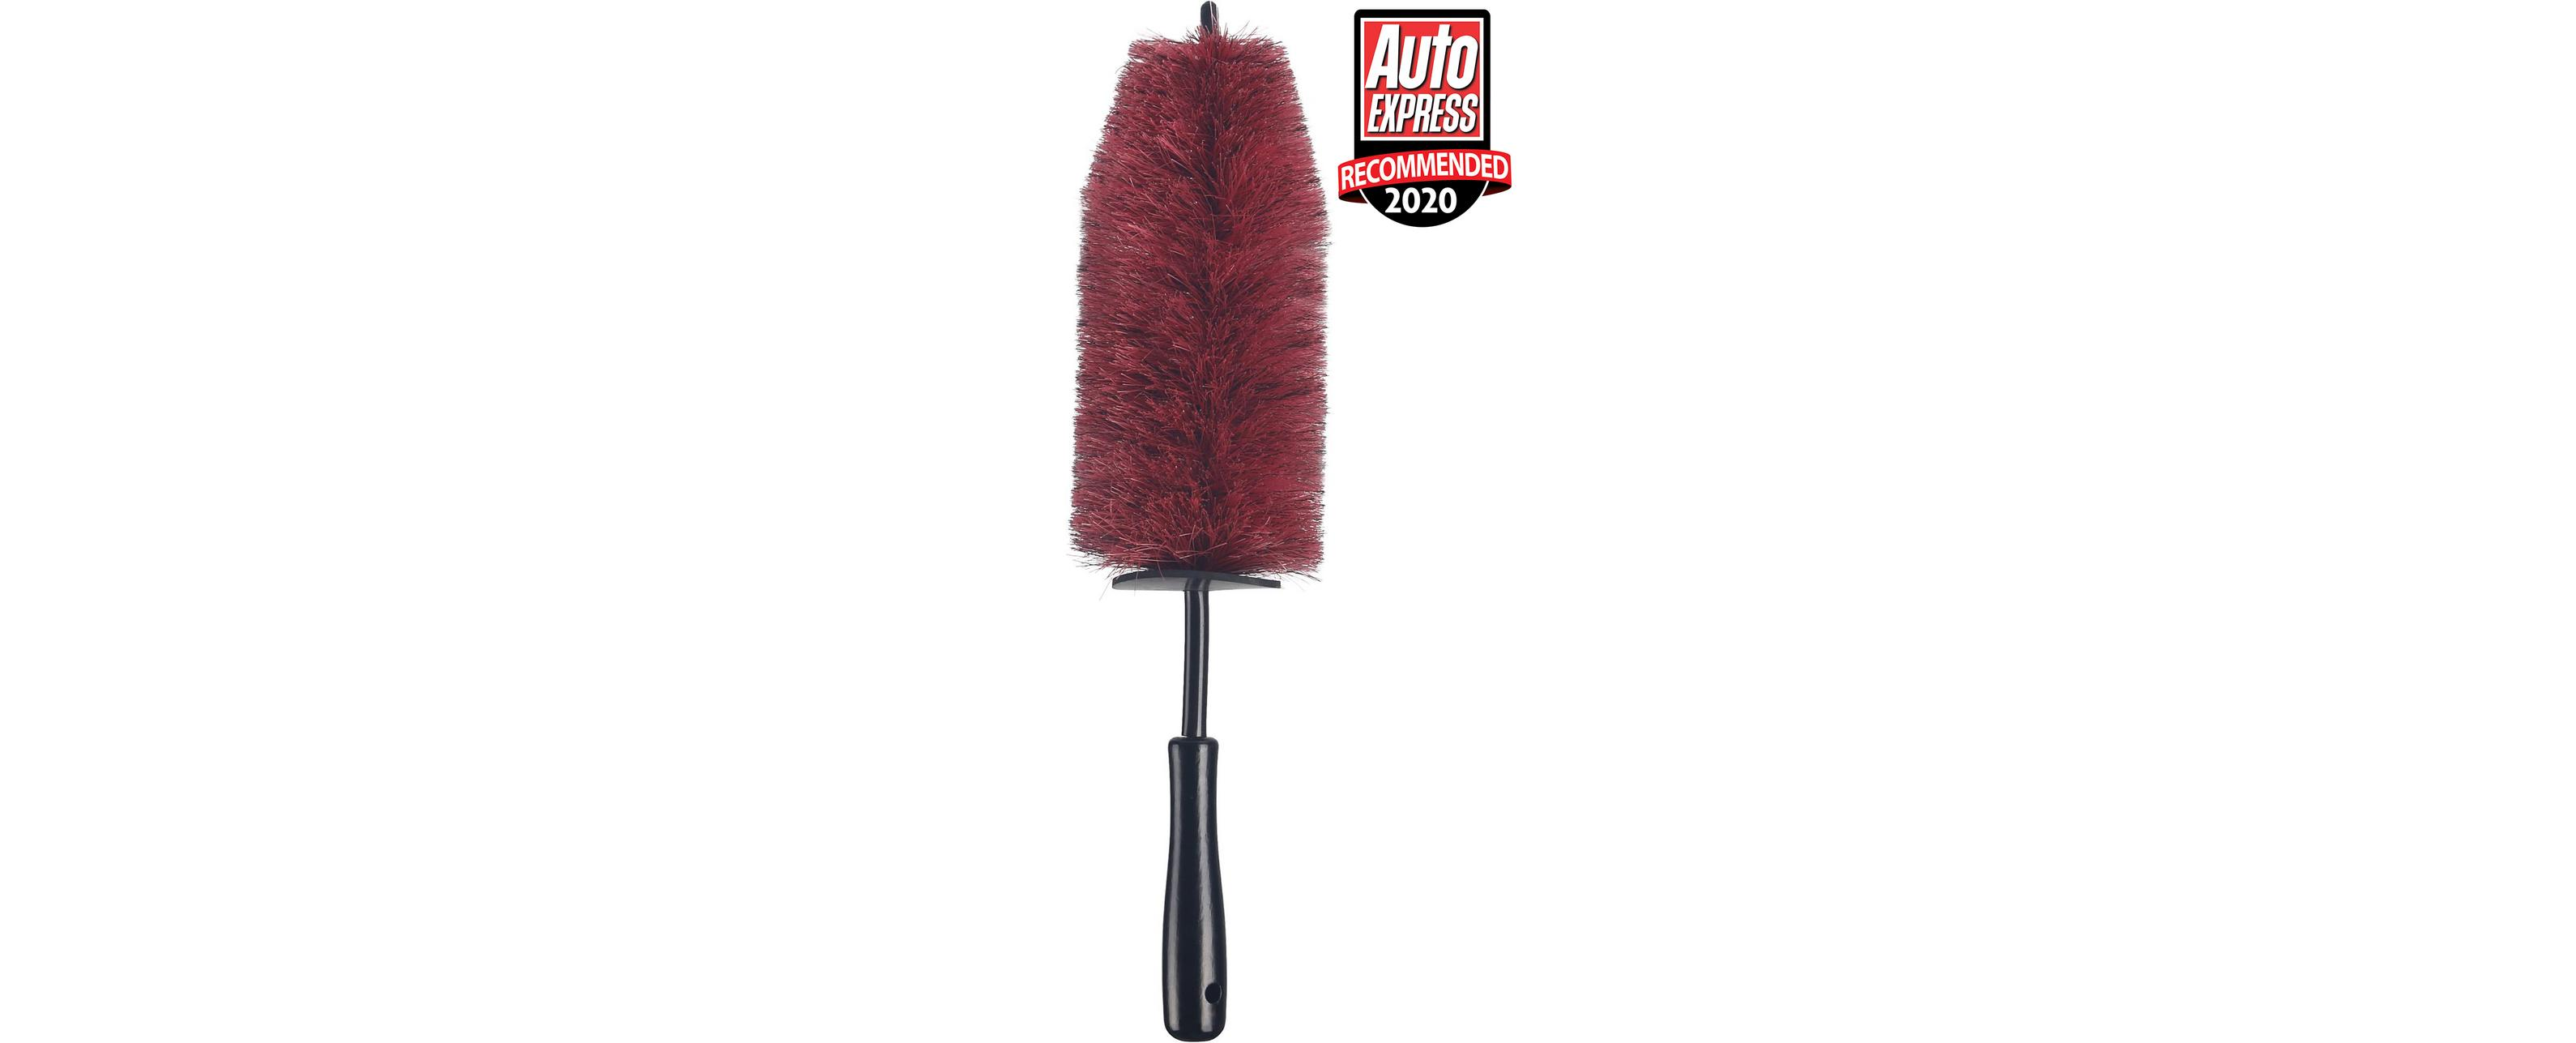 Long Alloy Wheel Brush Test Recommended 2nd Place